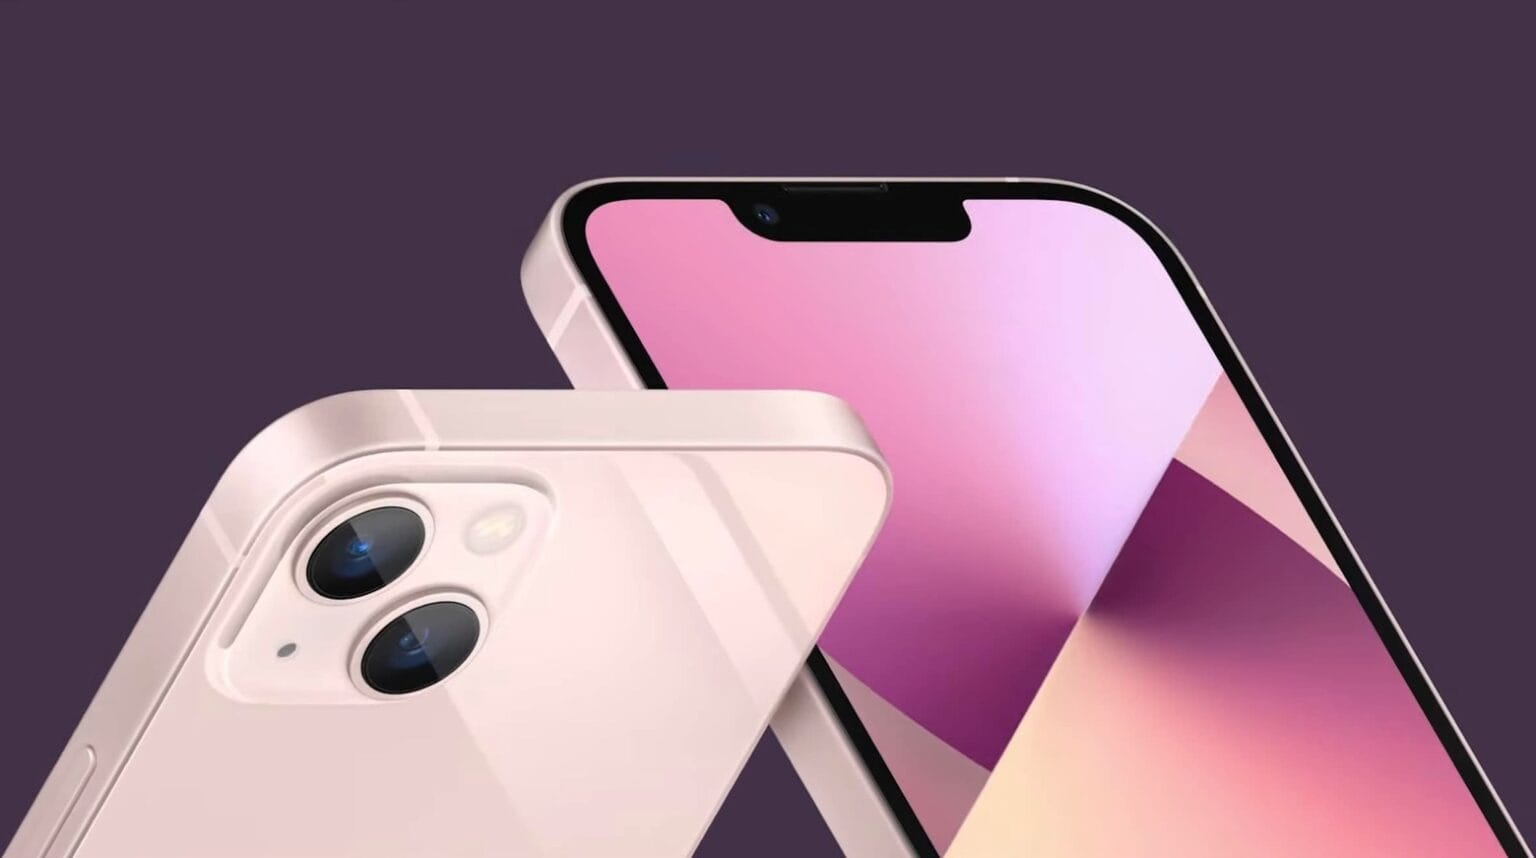 Faster iPhone 13 and iPhone 13 mini shrink the notch, add battery life